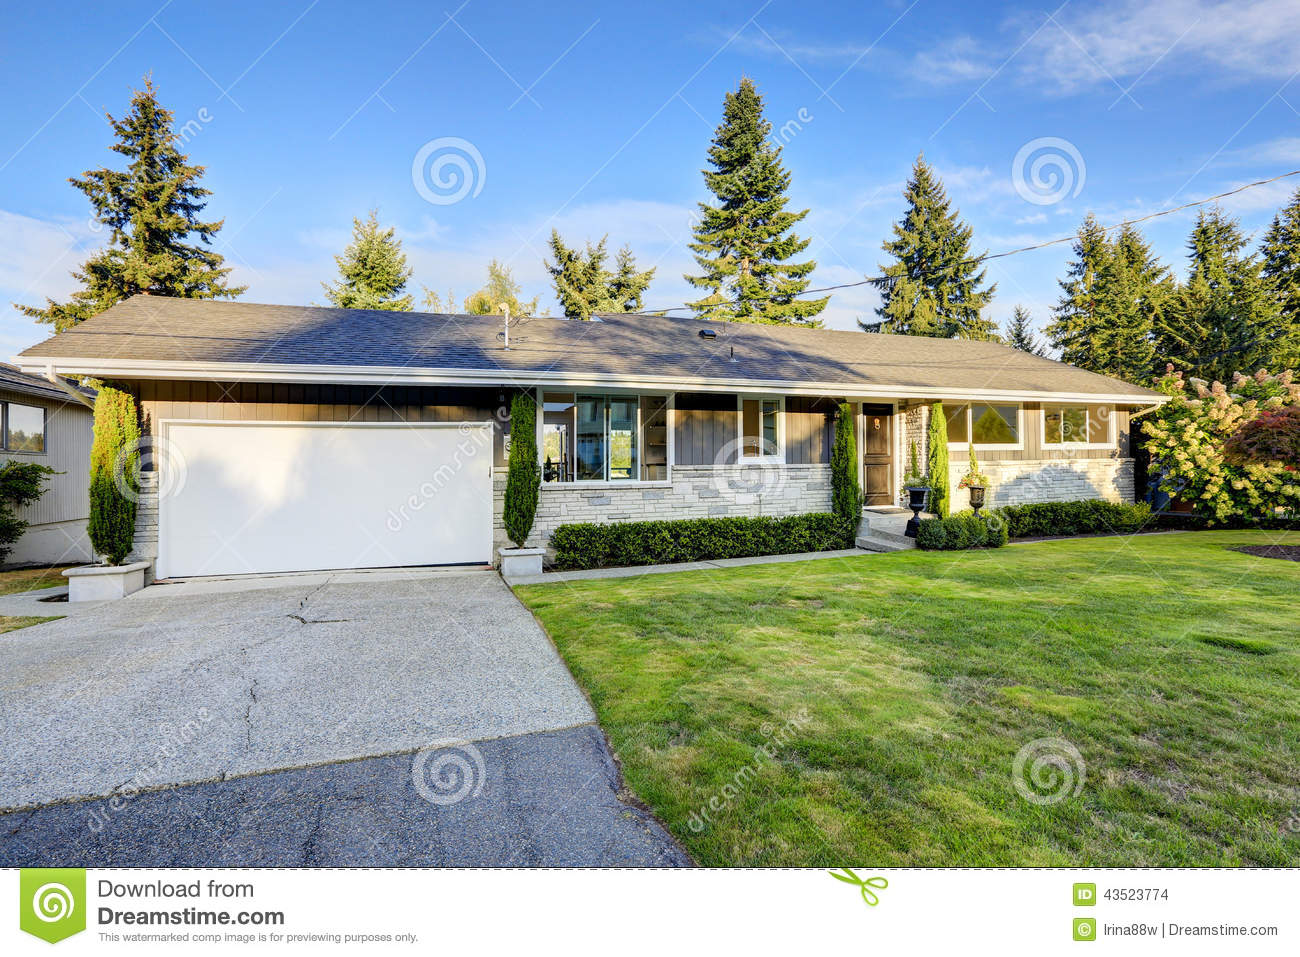 House Exterior With Curb Appeal Stock Photo Image 43523774